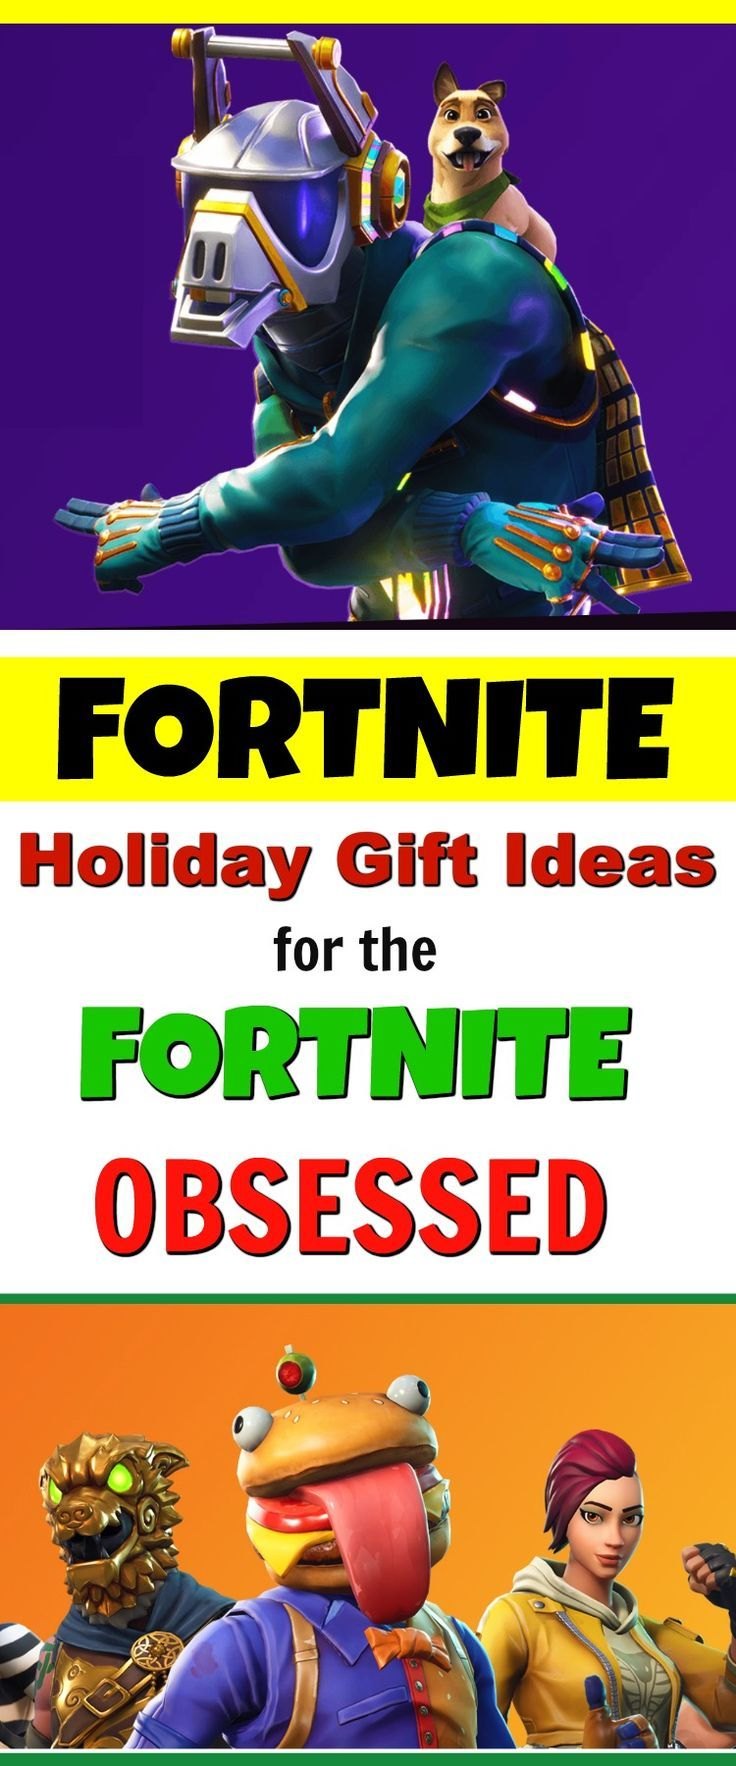 Fortnite Epic Games Gift Ideas For The Fortnite Gamer Kids Birthday Party Food Gifts For Kids Gifts